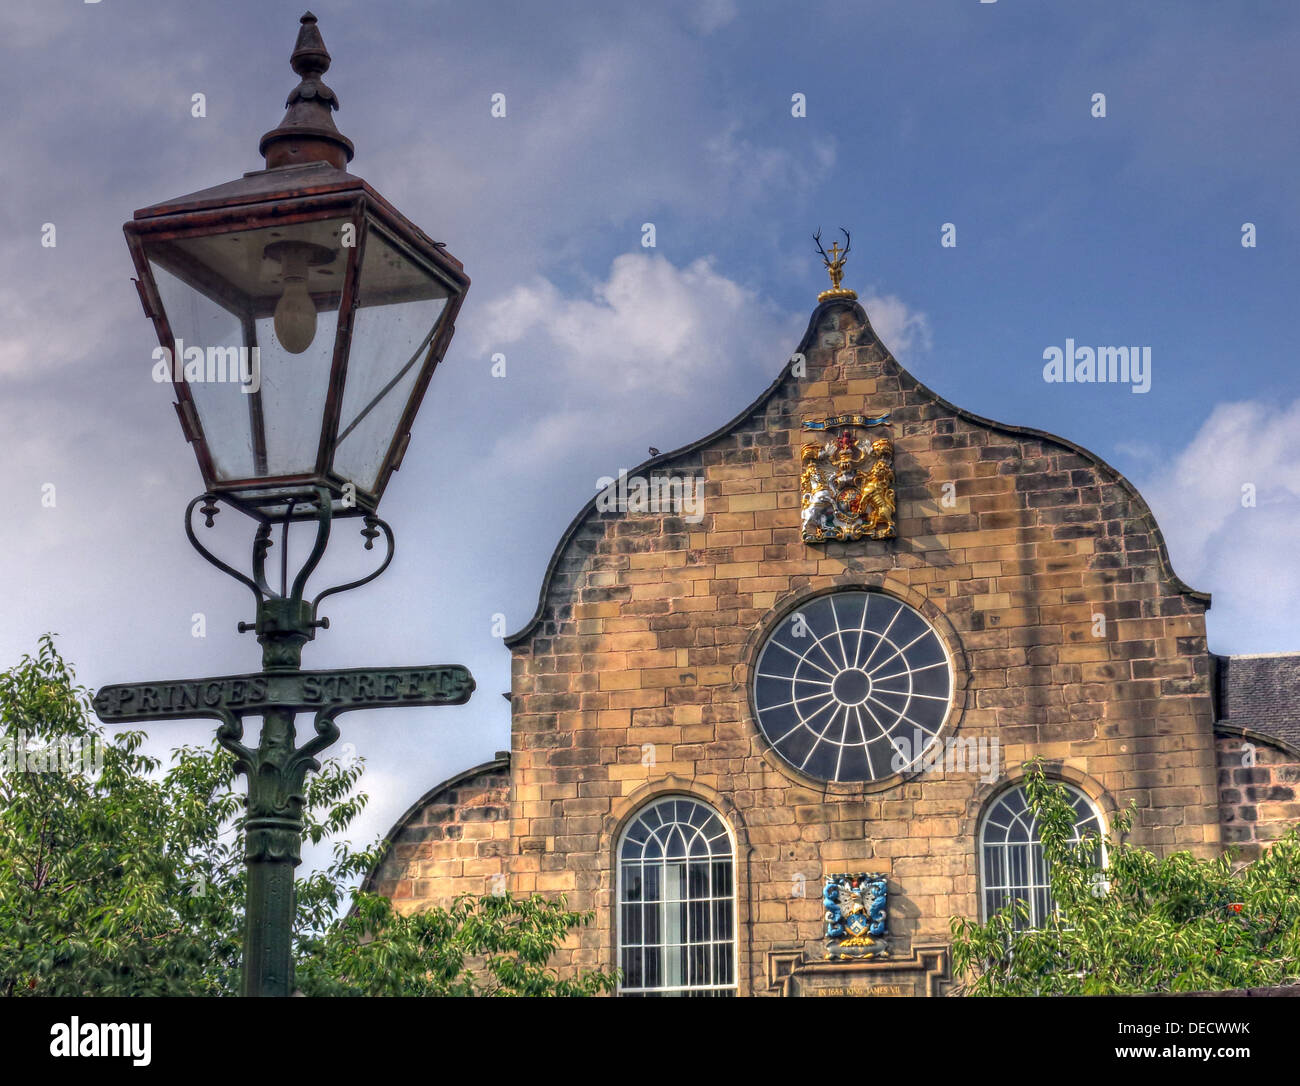 Canongate Kirk Church Edinburgh Royal Mile, Scotland, UK Exterior & old Princes St gas lamp - Stock Image